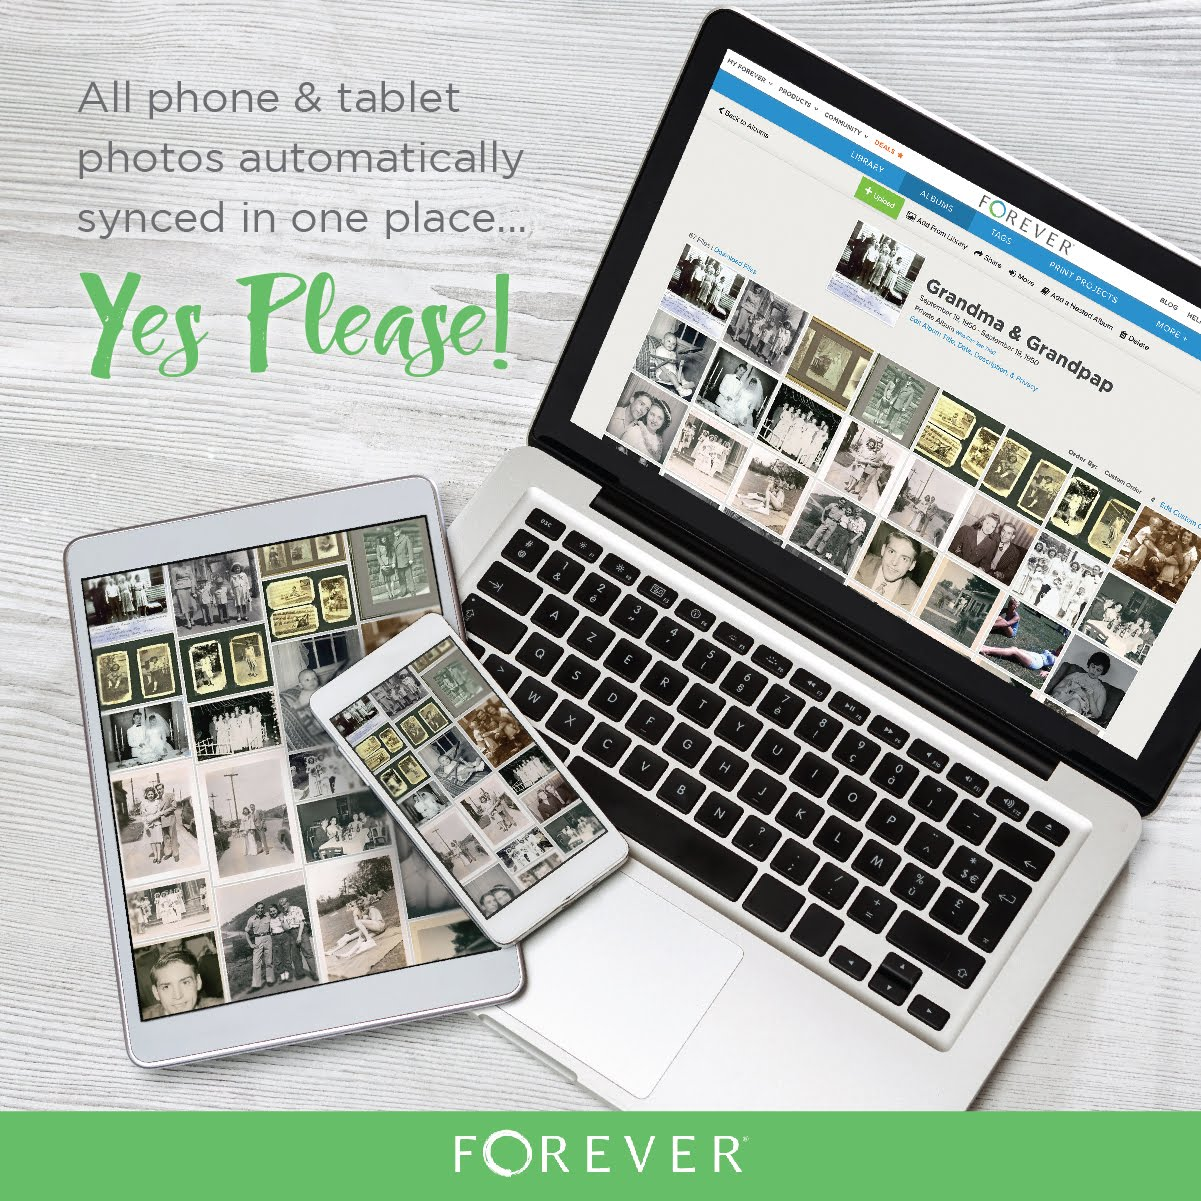 Start your digital journey with Forever!